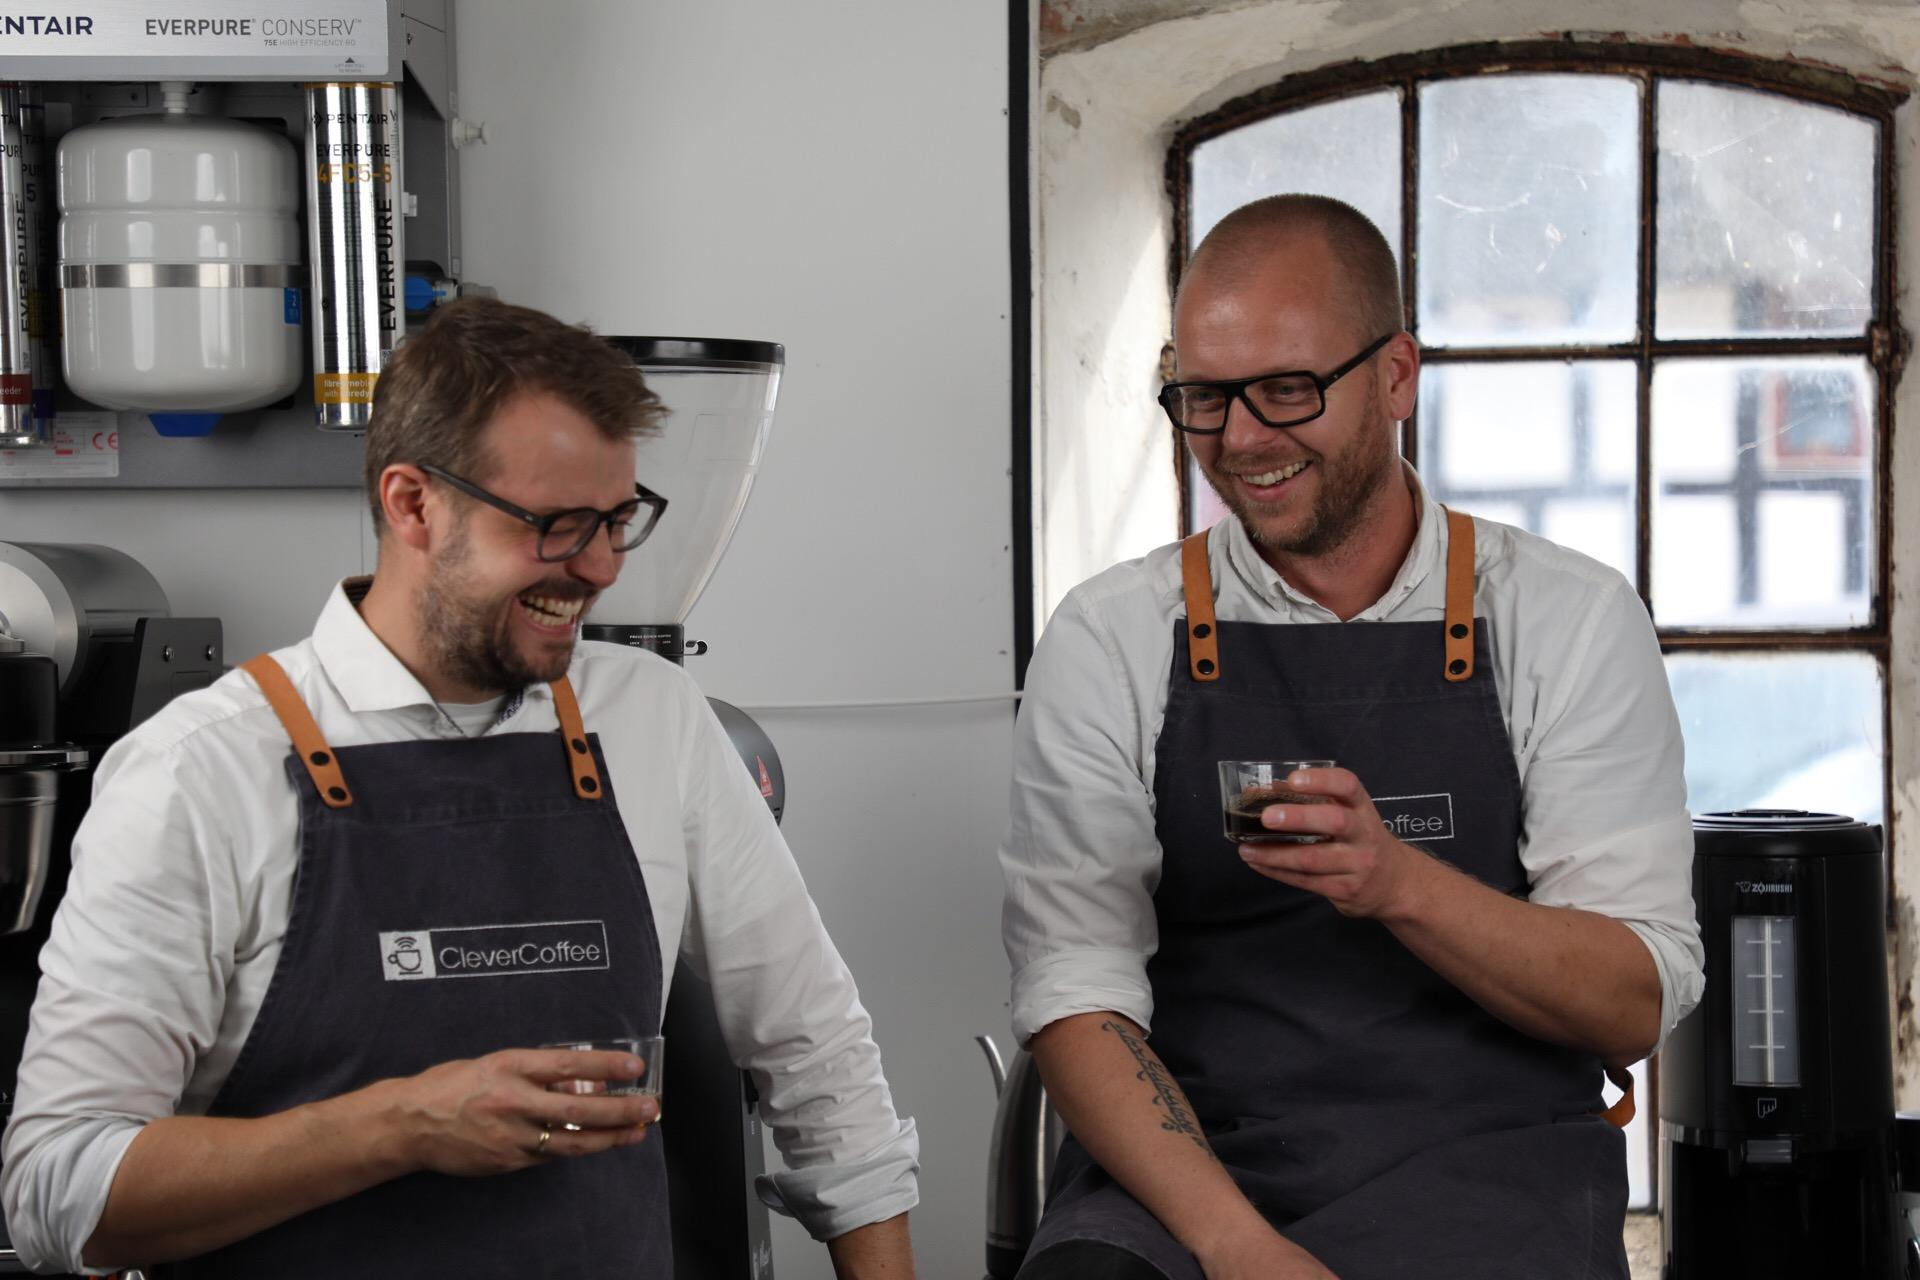 CleverCoffee - Lindy Brogaard (R) and Lars Frello (L)